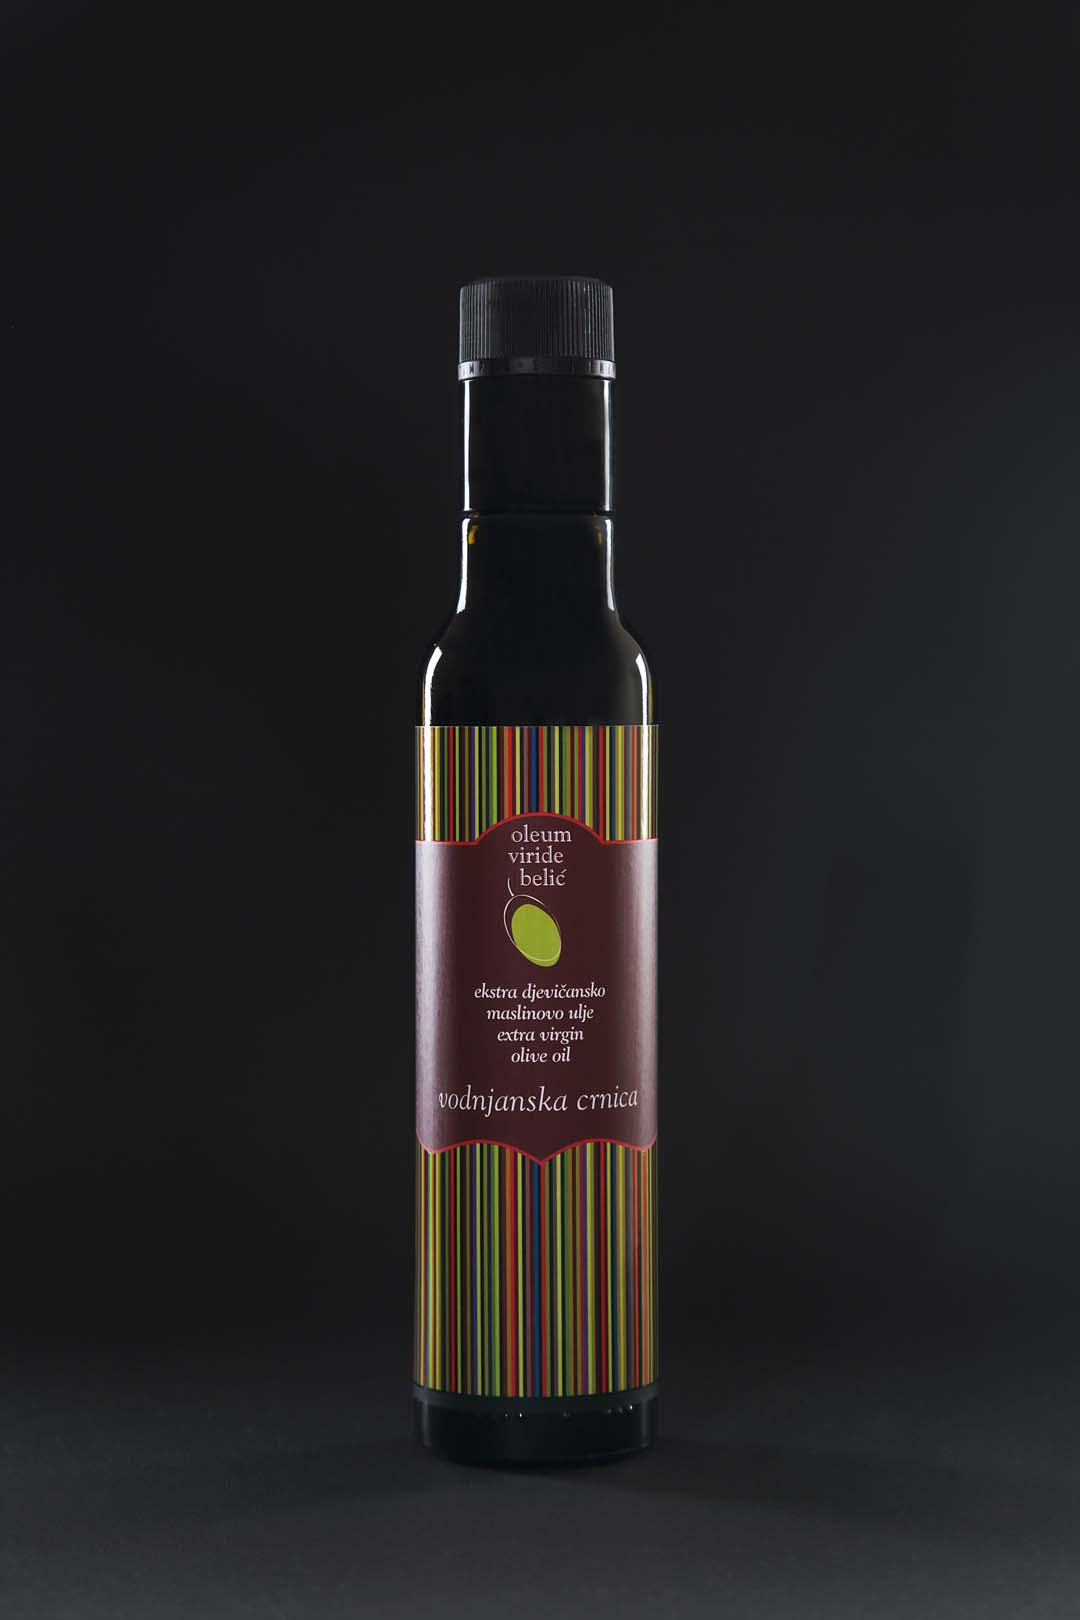 The Gift of Extra Virgin Olive Oil Oleum Viride Belić Istria Croatia finest istrian olive oil OleaBB